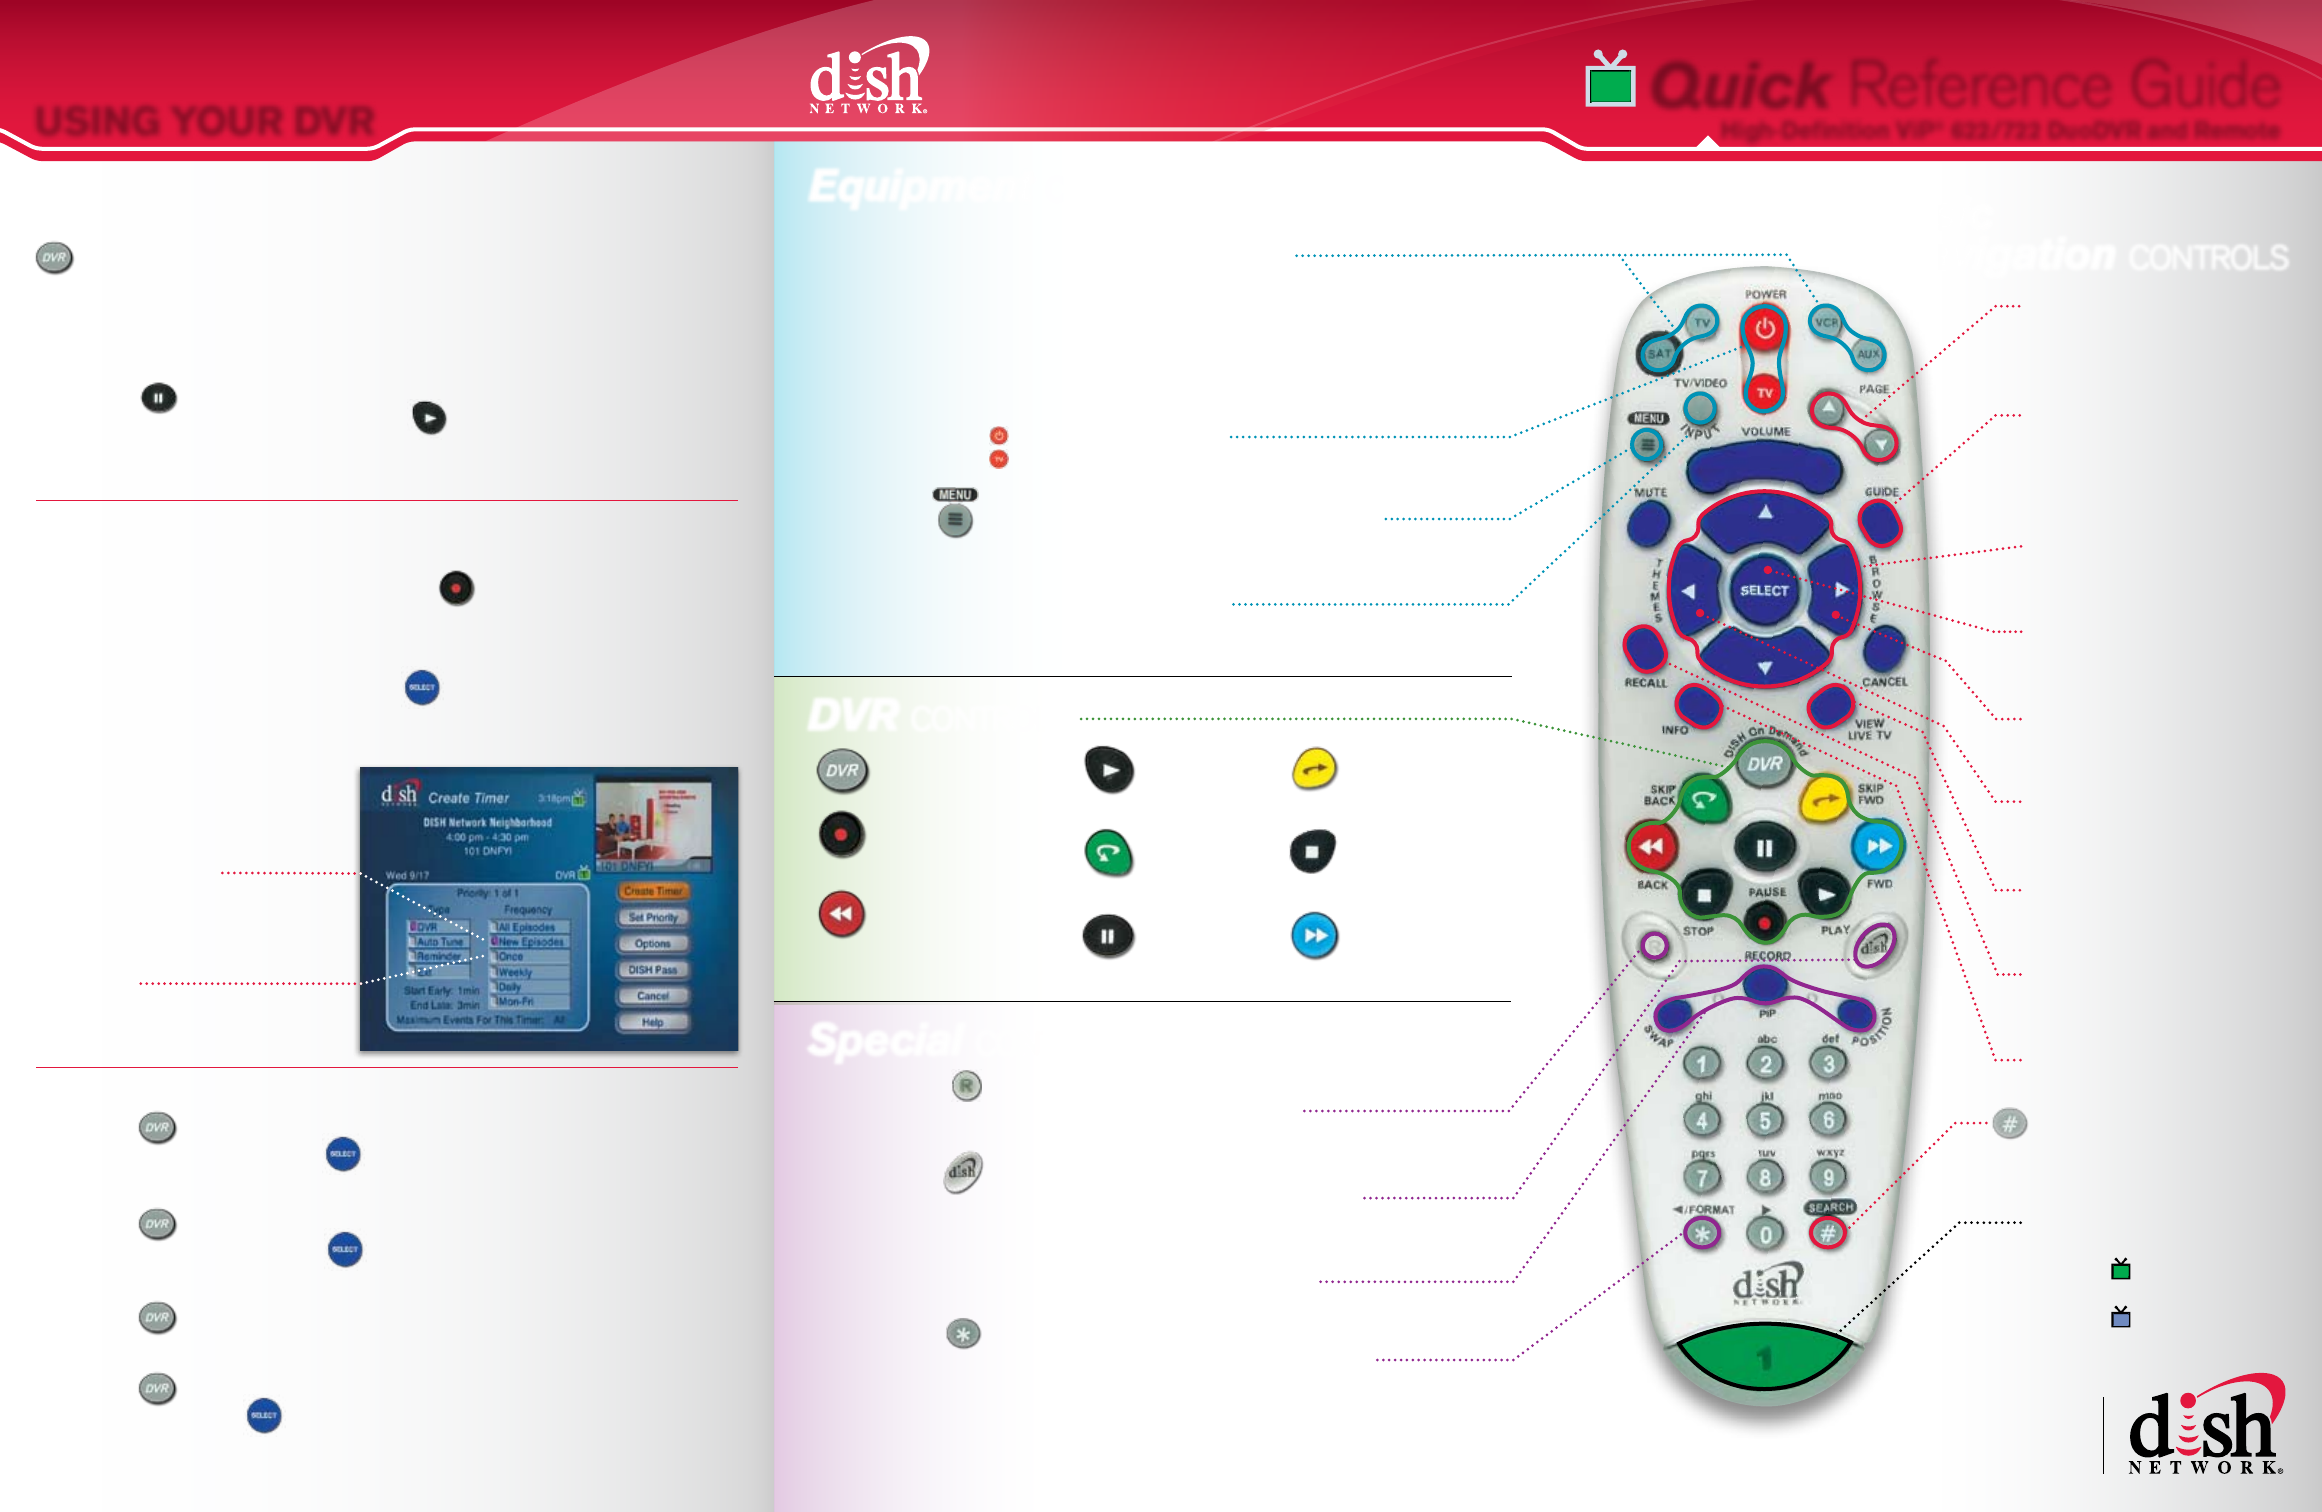 how to set dish network remote to tv